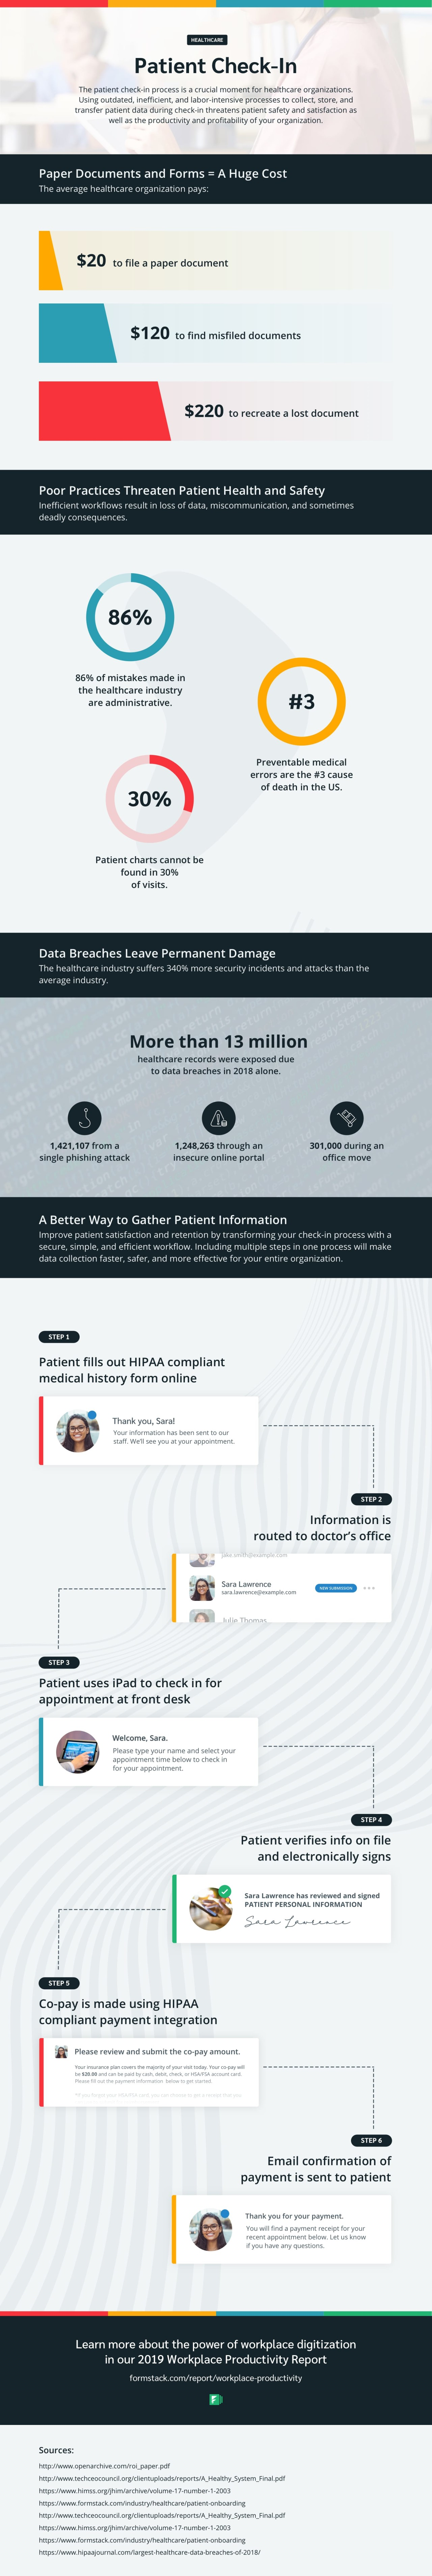 Patient experience healthcare infographic